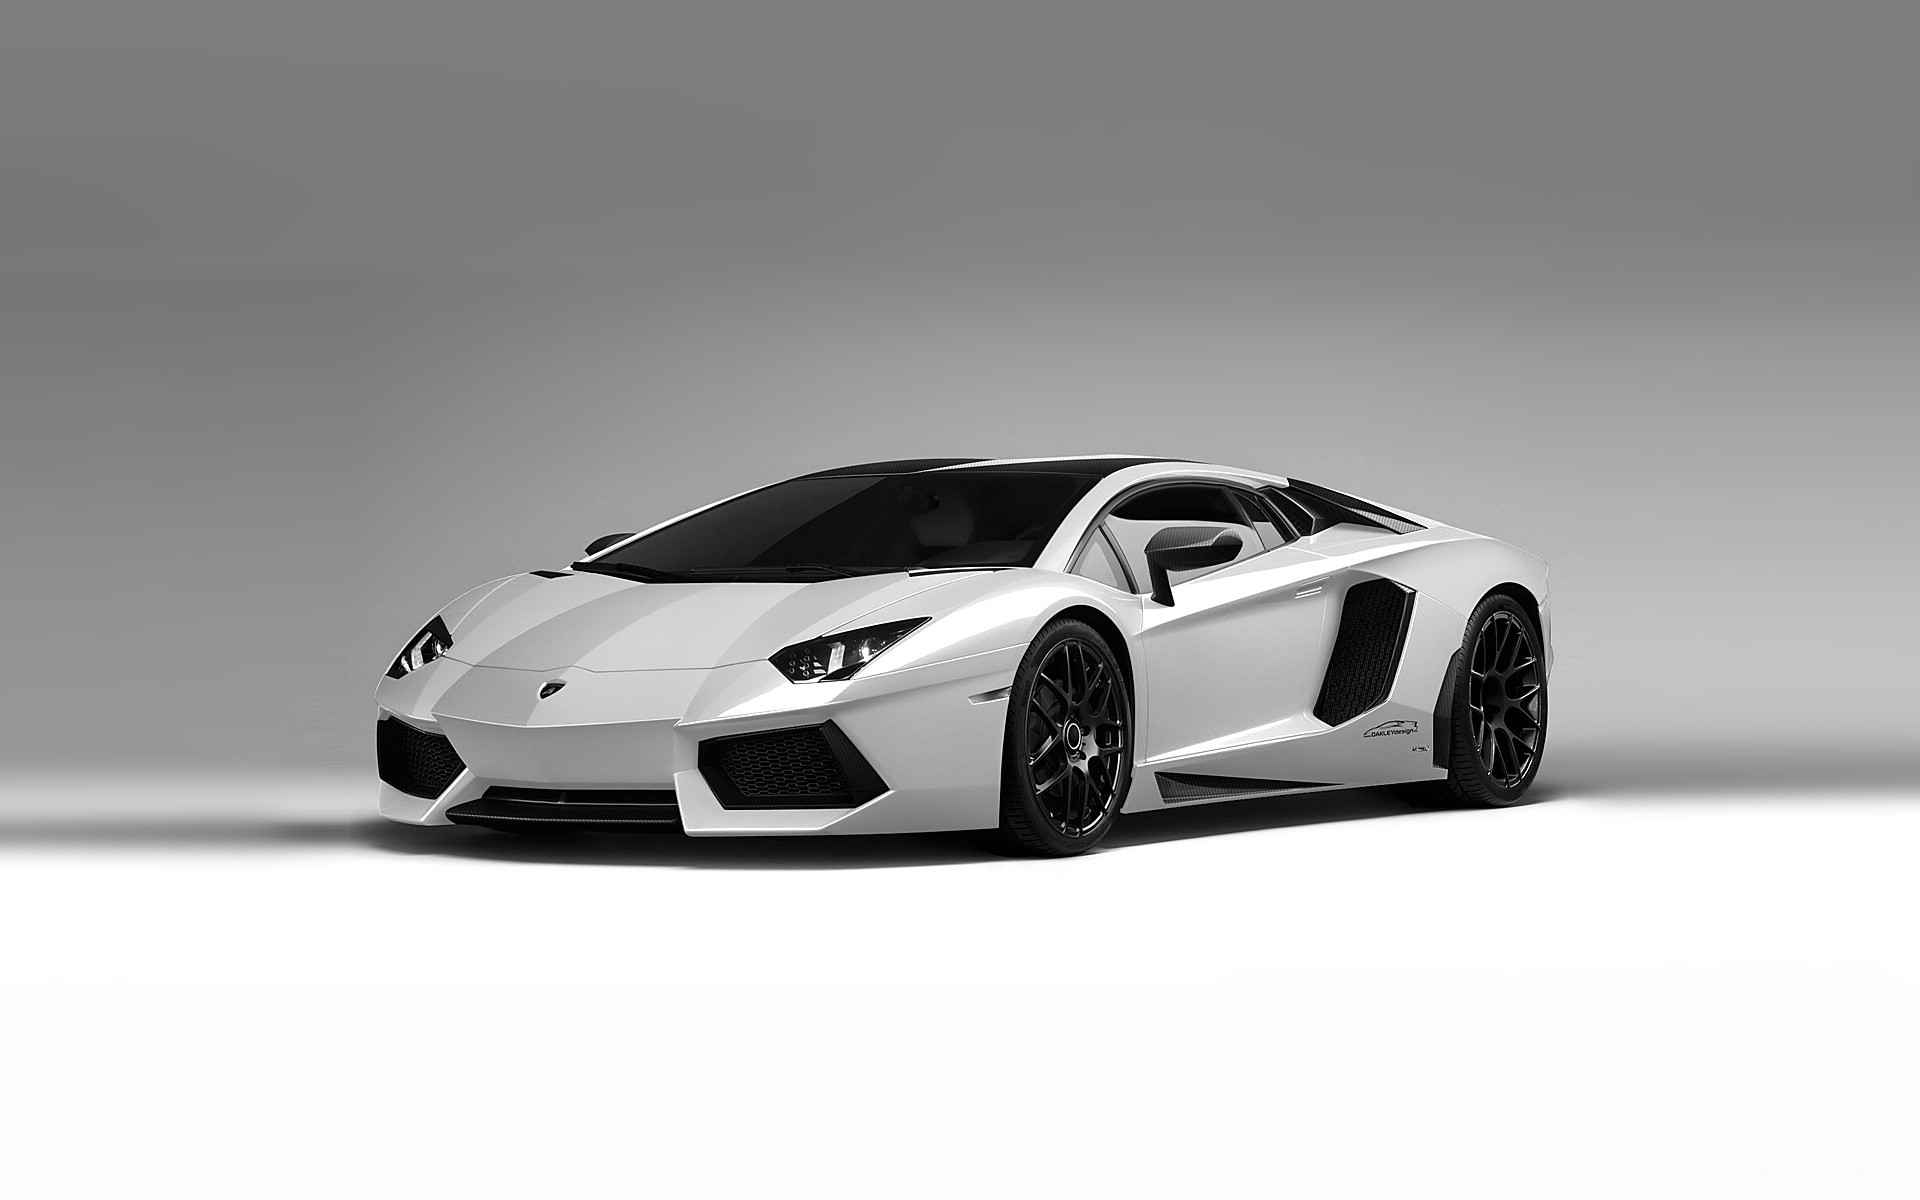 Lamborghini Aventador White Wallpaper | HD Car Wallpapers ...